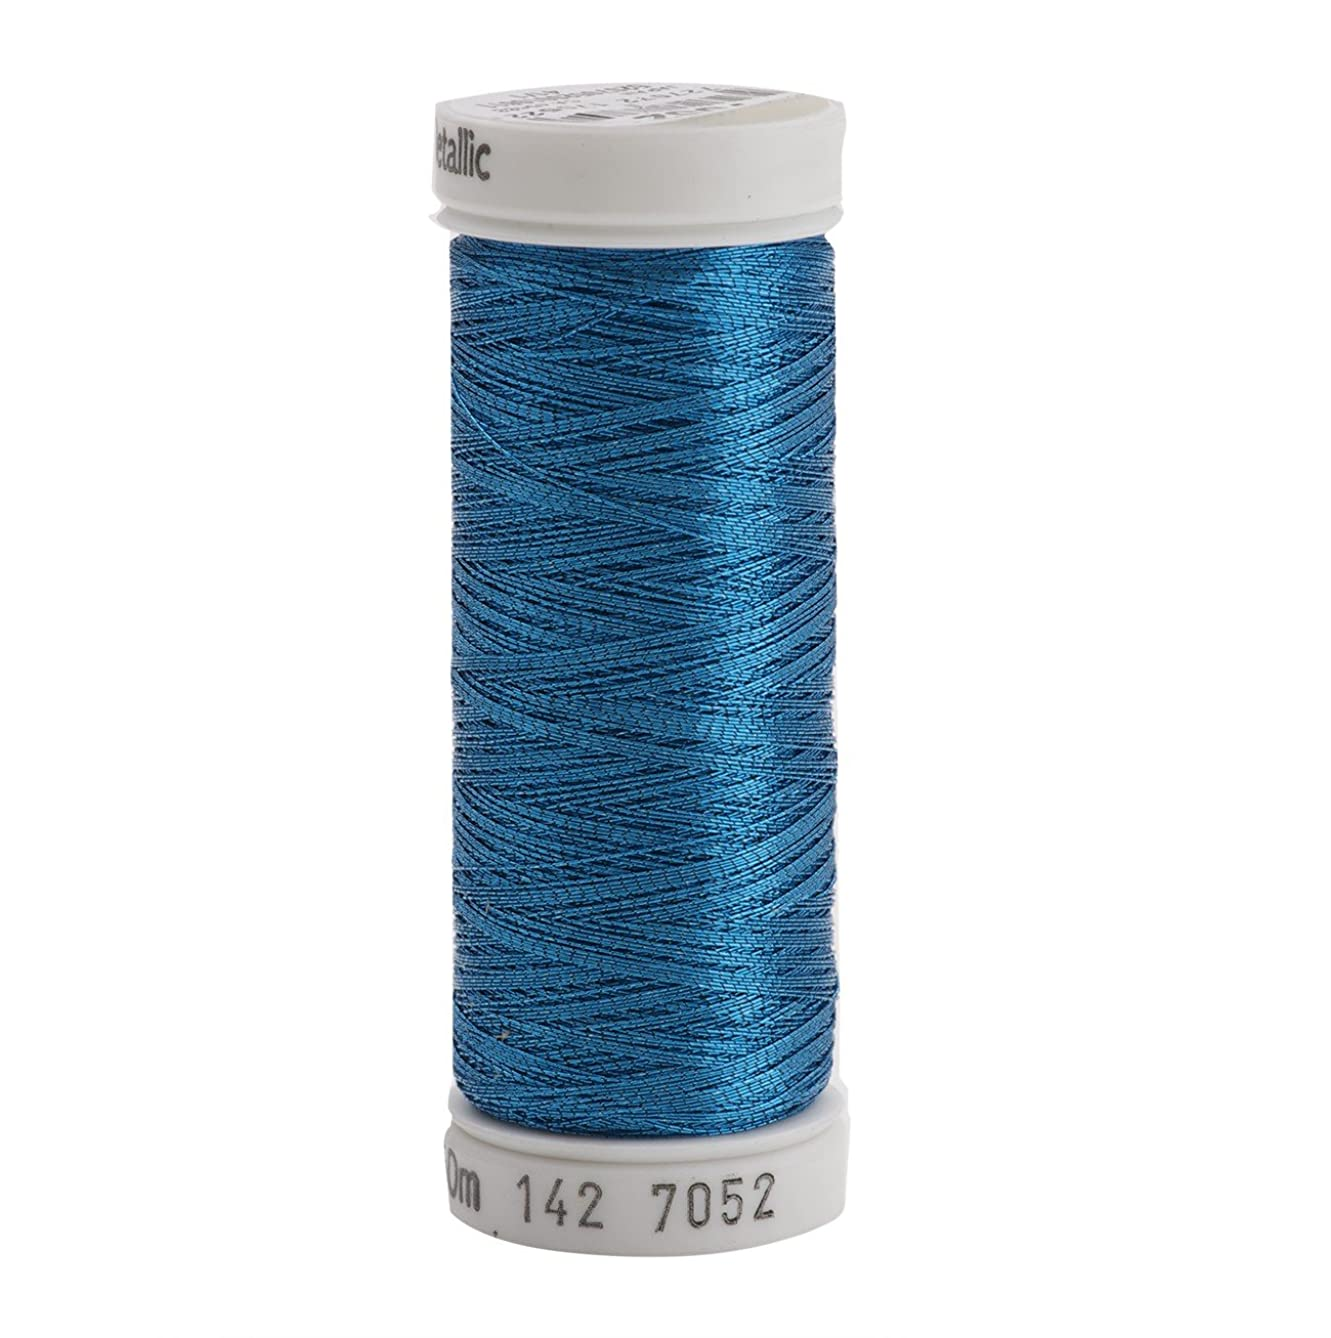 Sulky 142-7052 Metallic Thread for Sewing, Peacock Blue